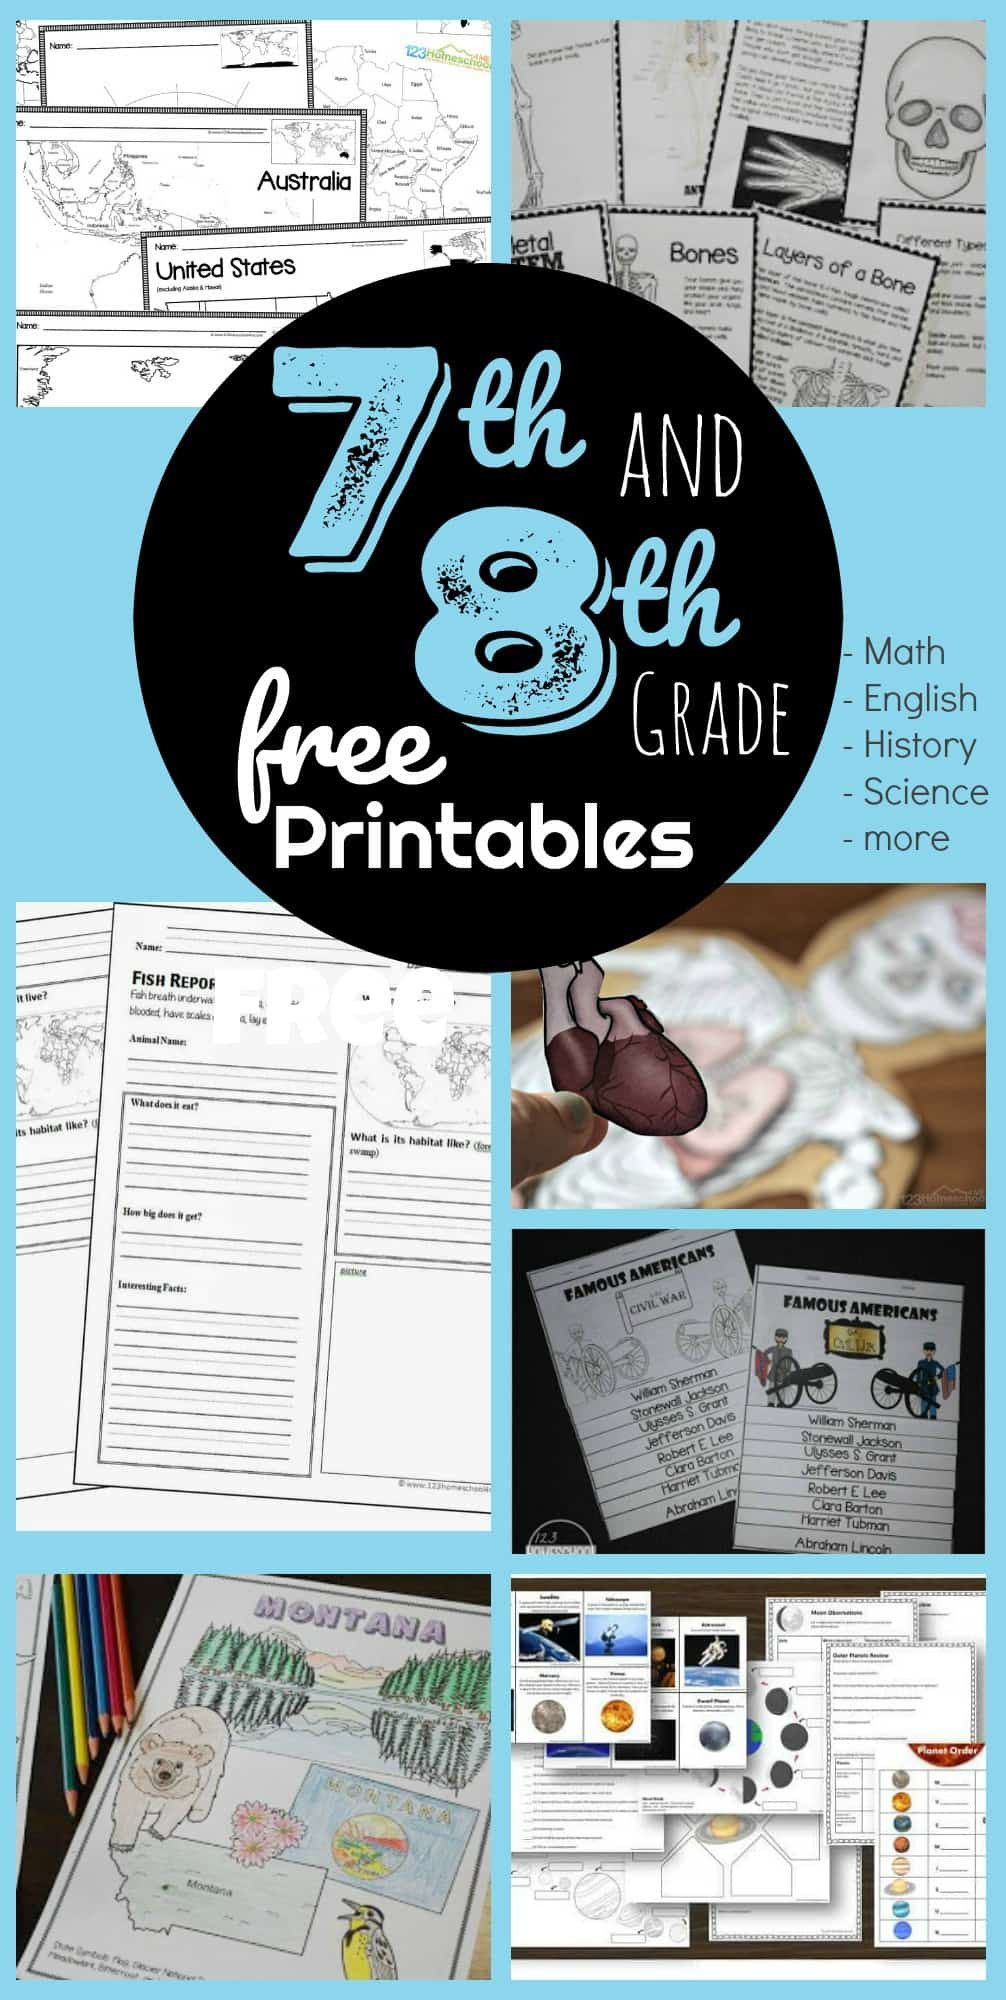 7th Grade Grammar Worksheets Pdf Free 7th & 8th Grade Worksheets